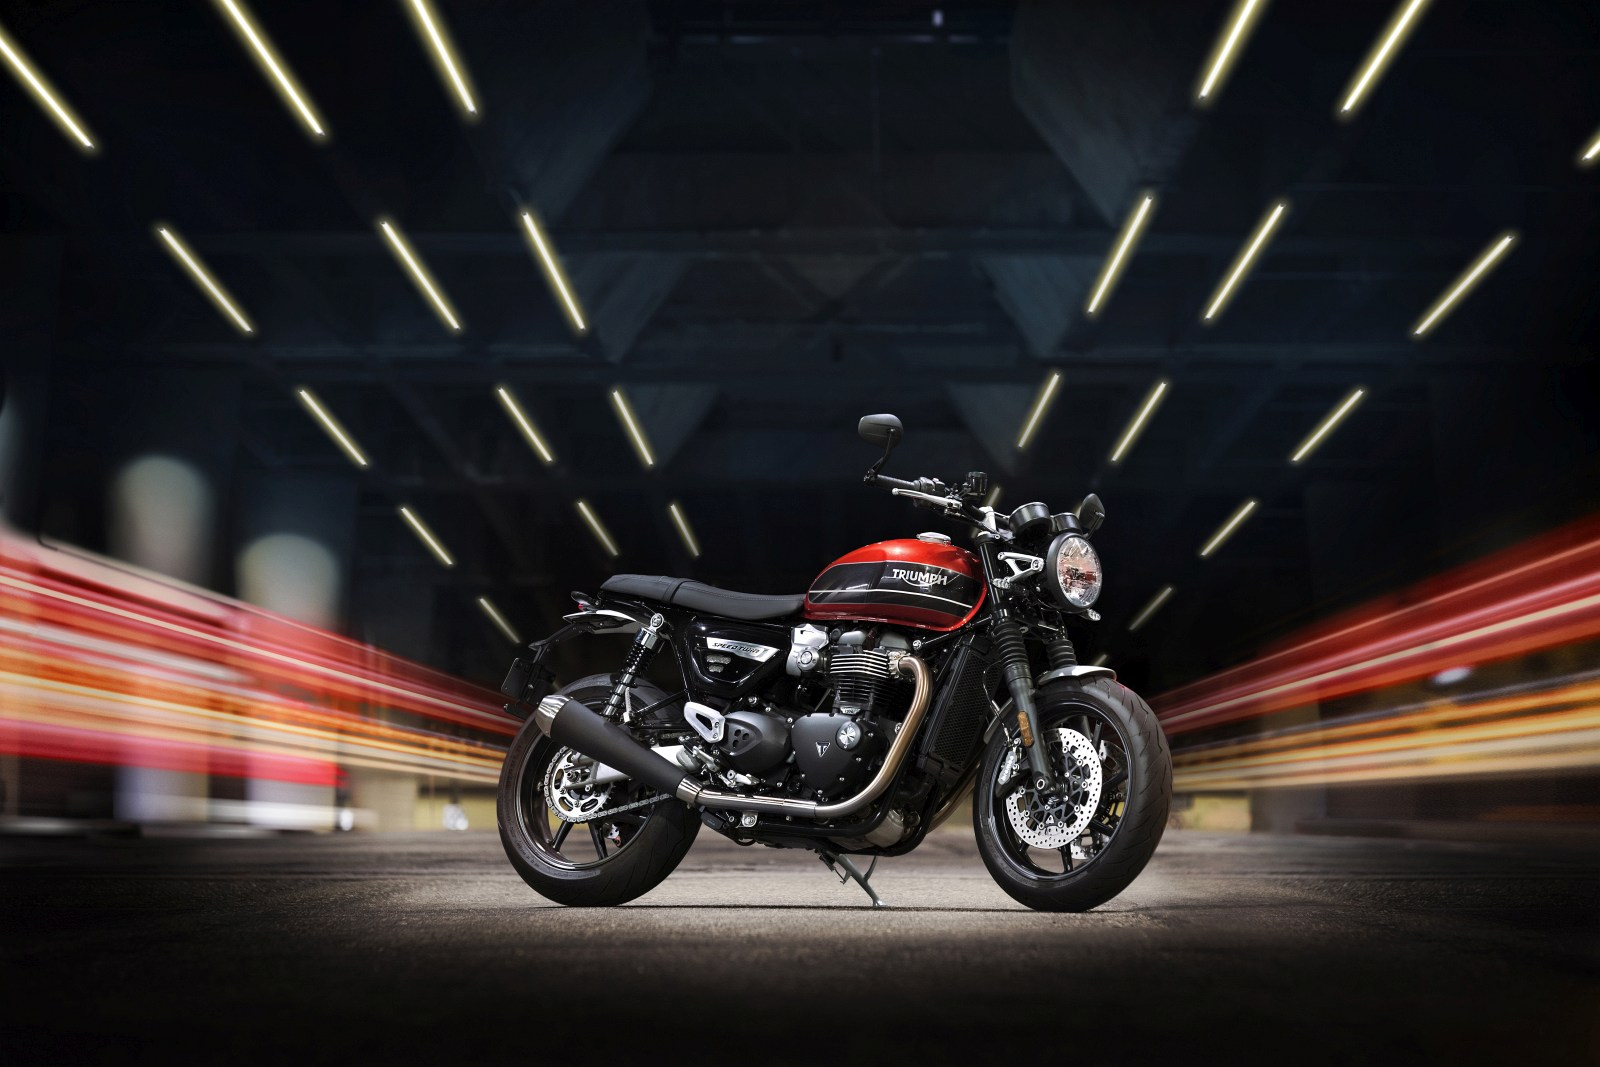 2019 SPEED TWIN Static 1